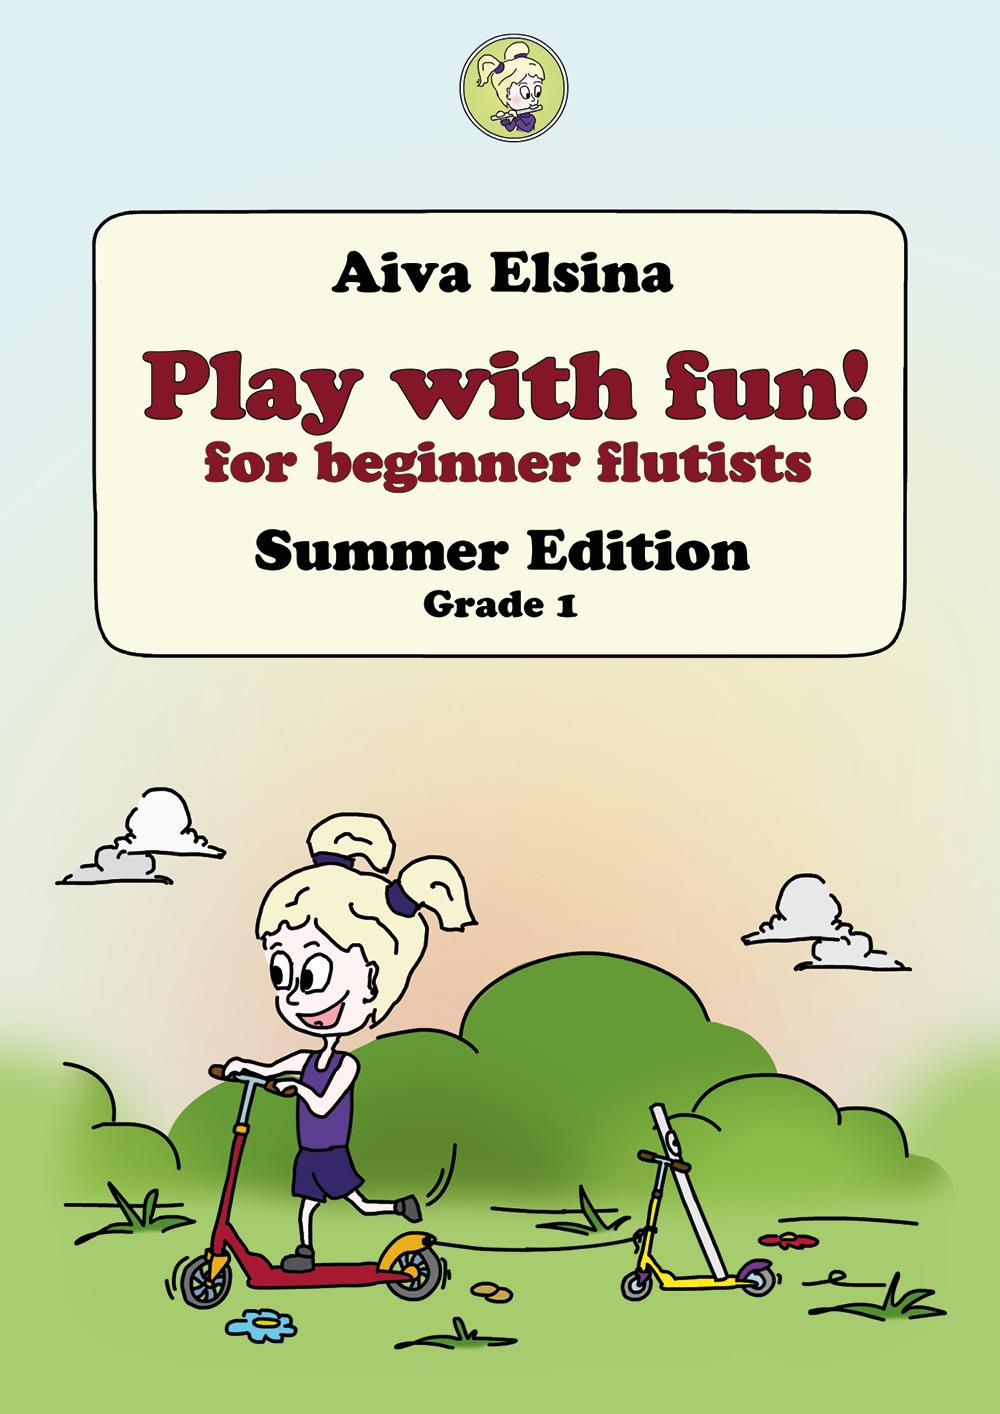 Play with fun. Summer edition. Grade 1